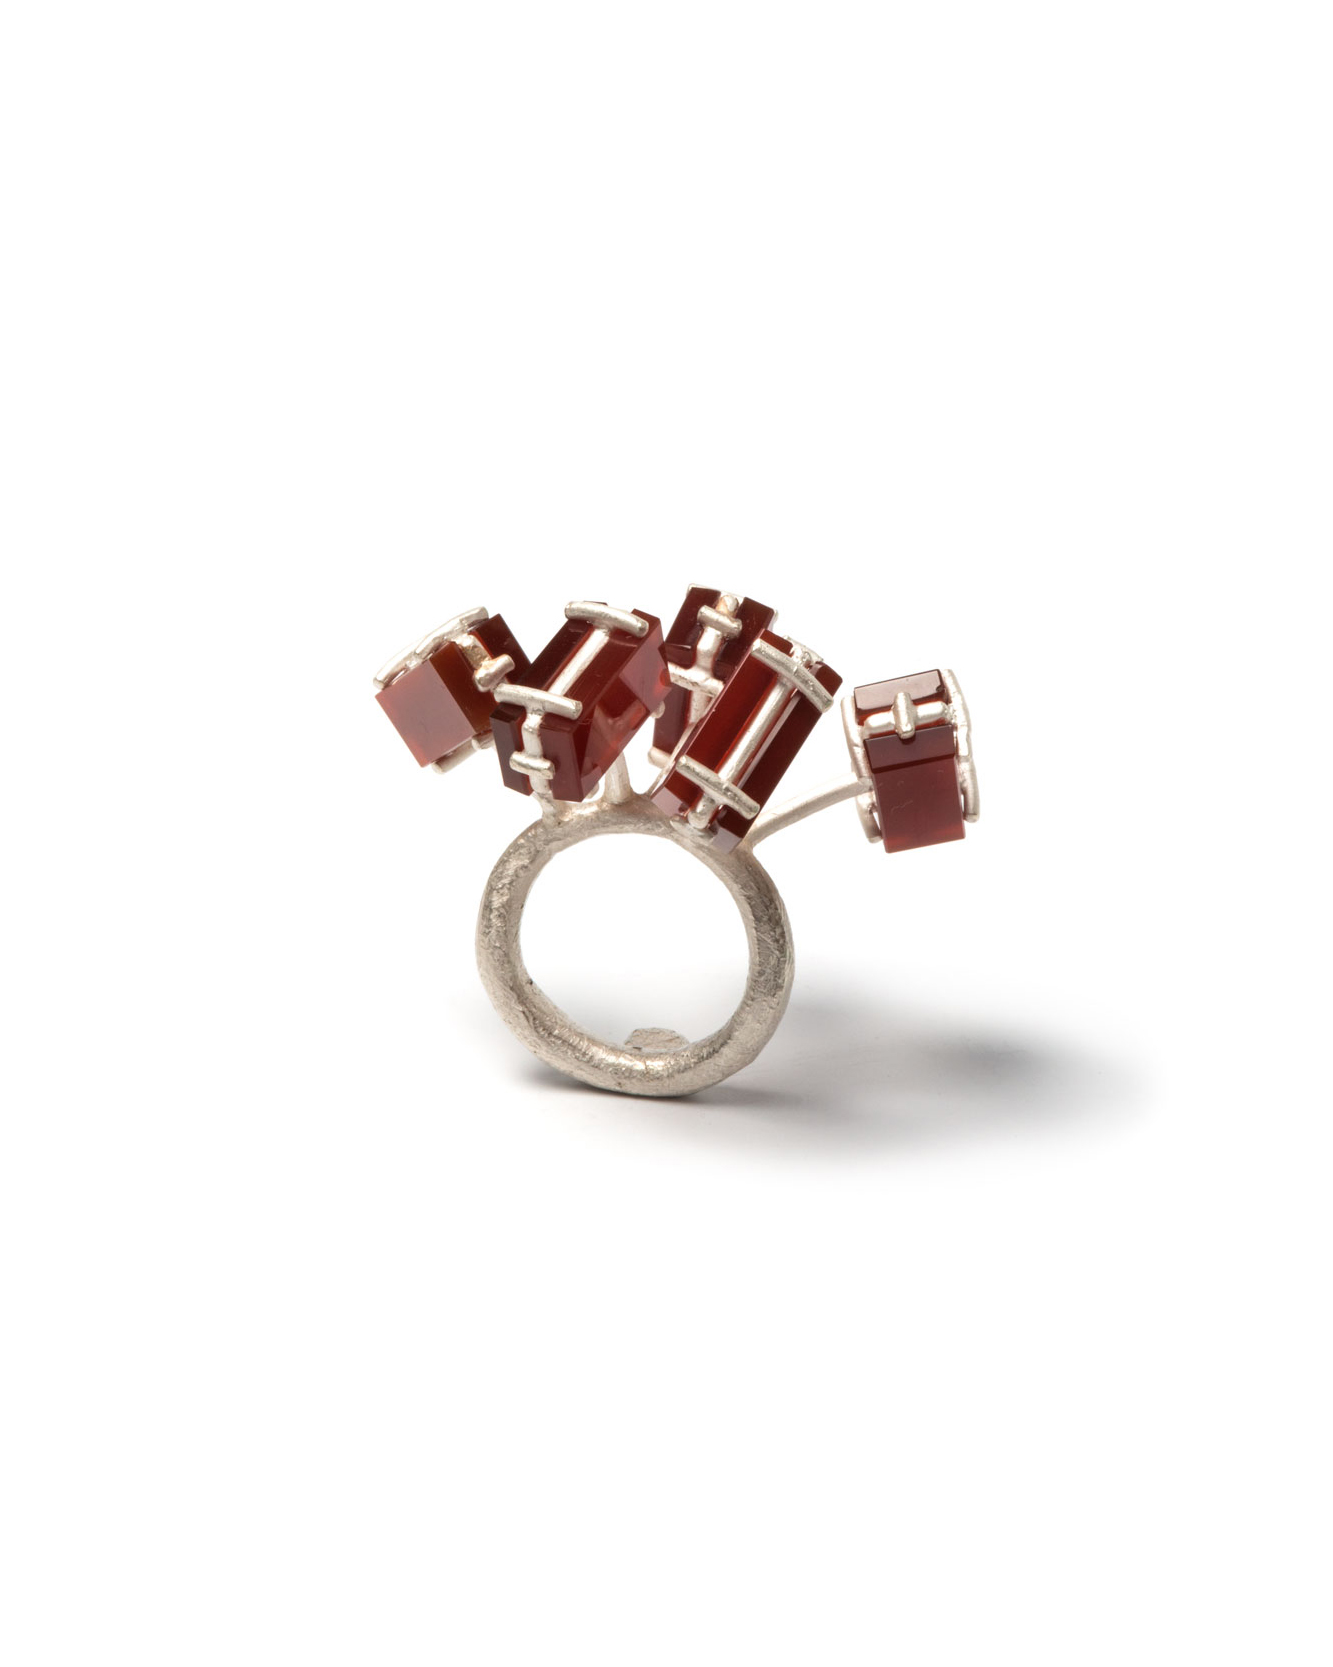 Winfried Krüger, untitled, 1997, ring; oxidised silver, stones, 55 x 40 mm, €1090